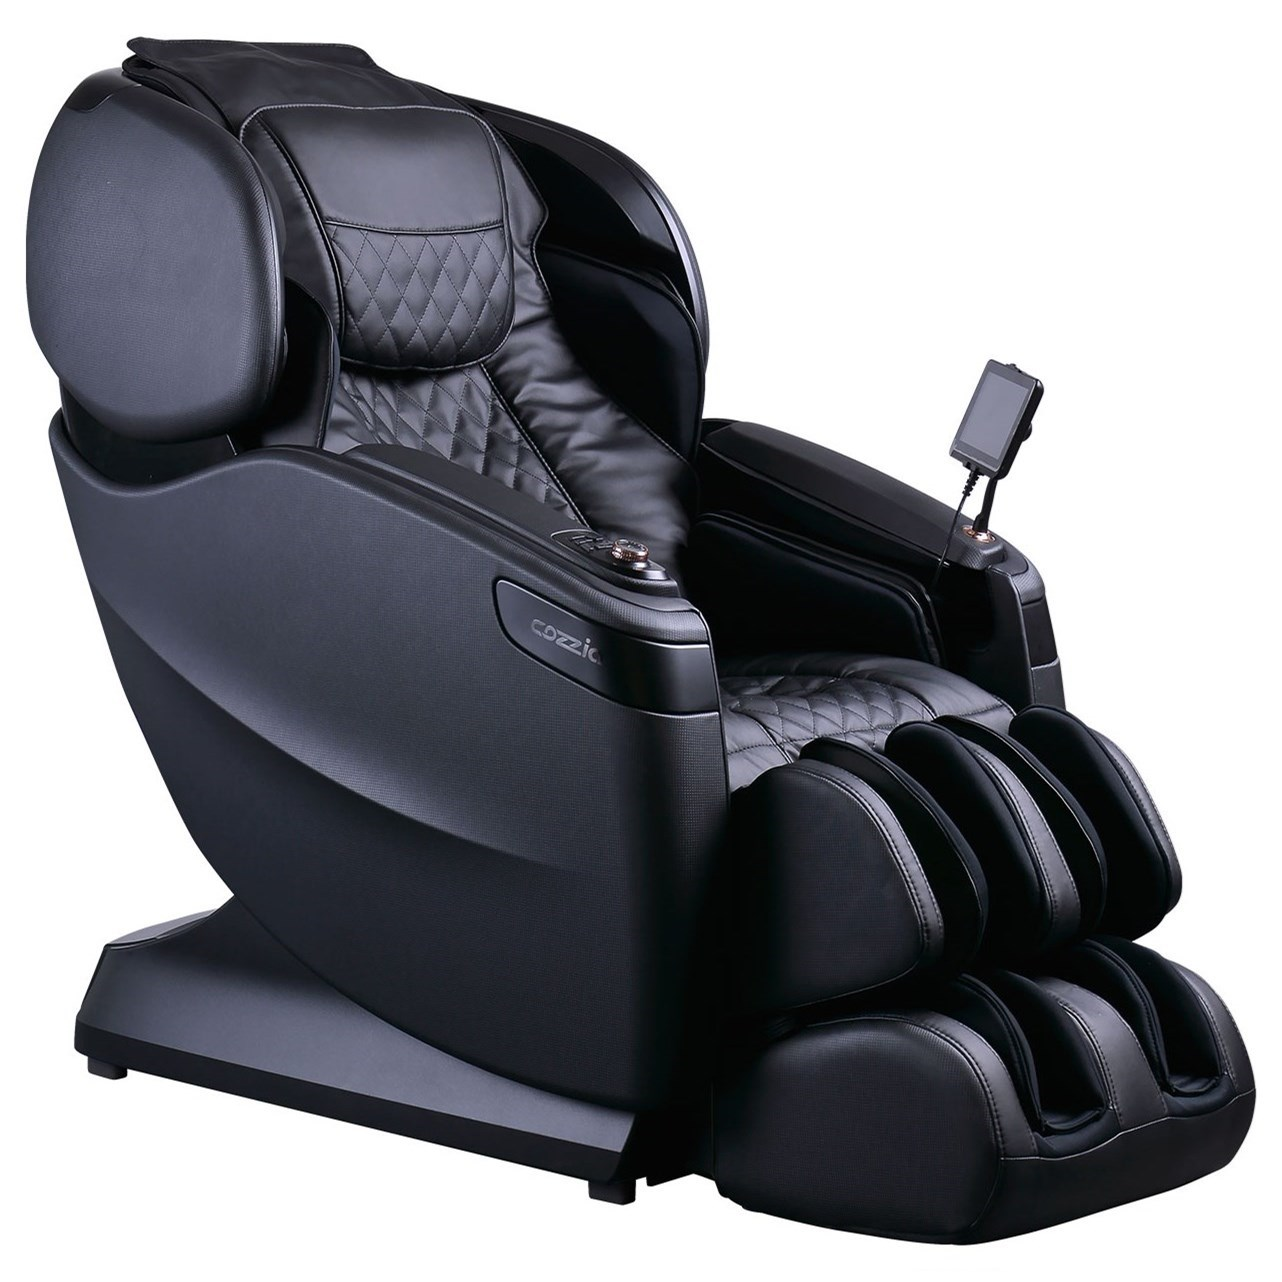 Cozzia Massage Chairs Cozzia Cz Cz 710 Reclining Massage Chair With Foot And